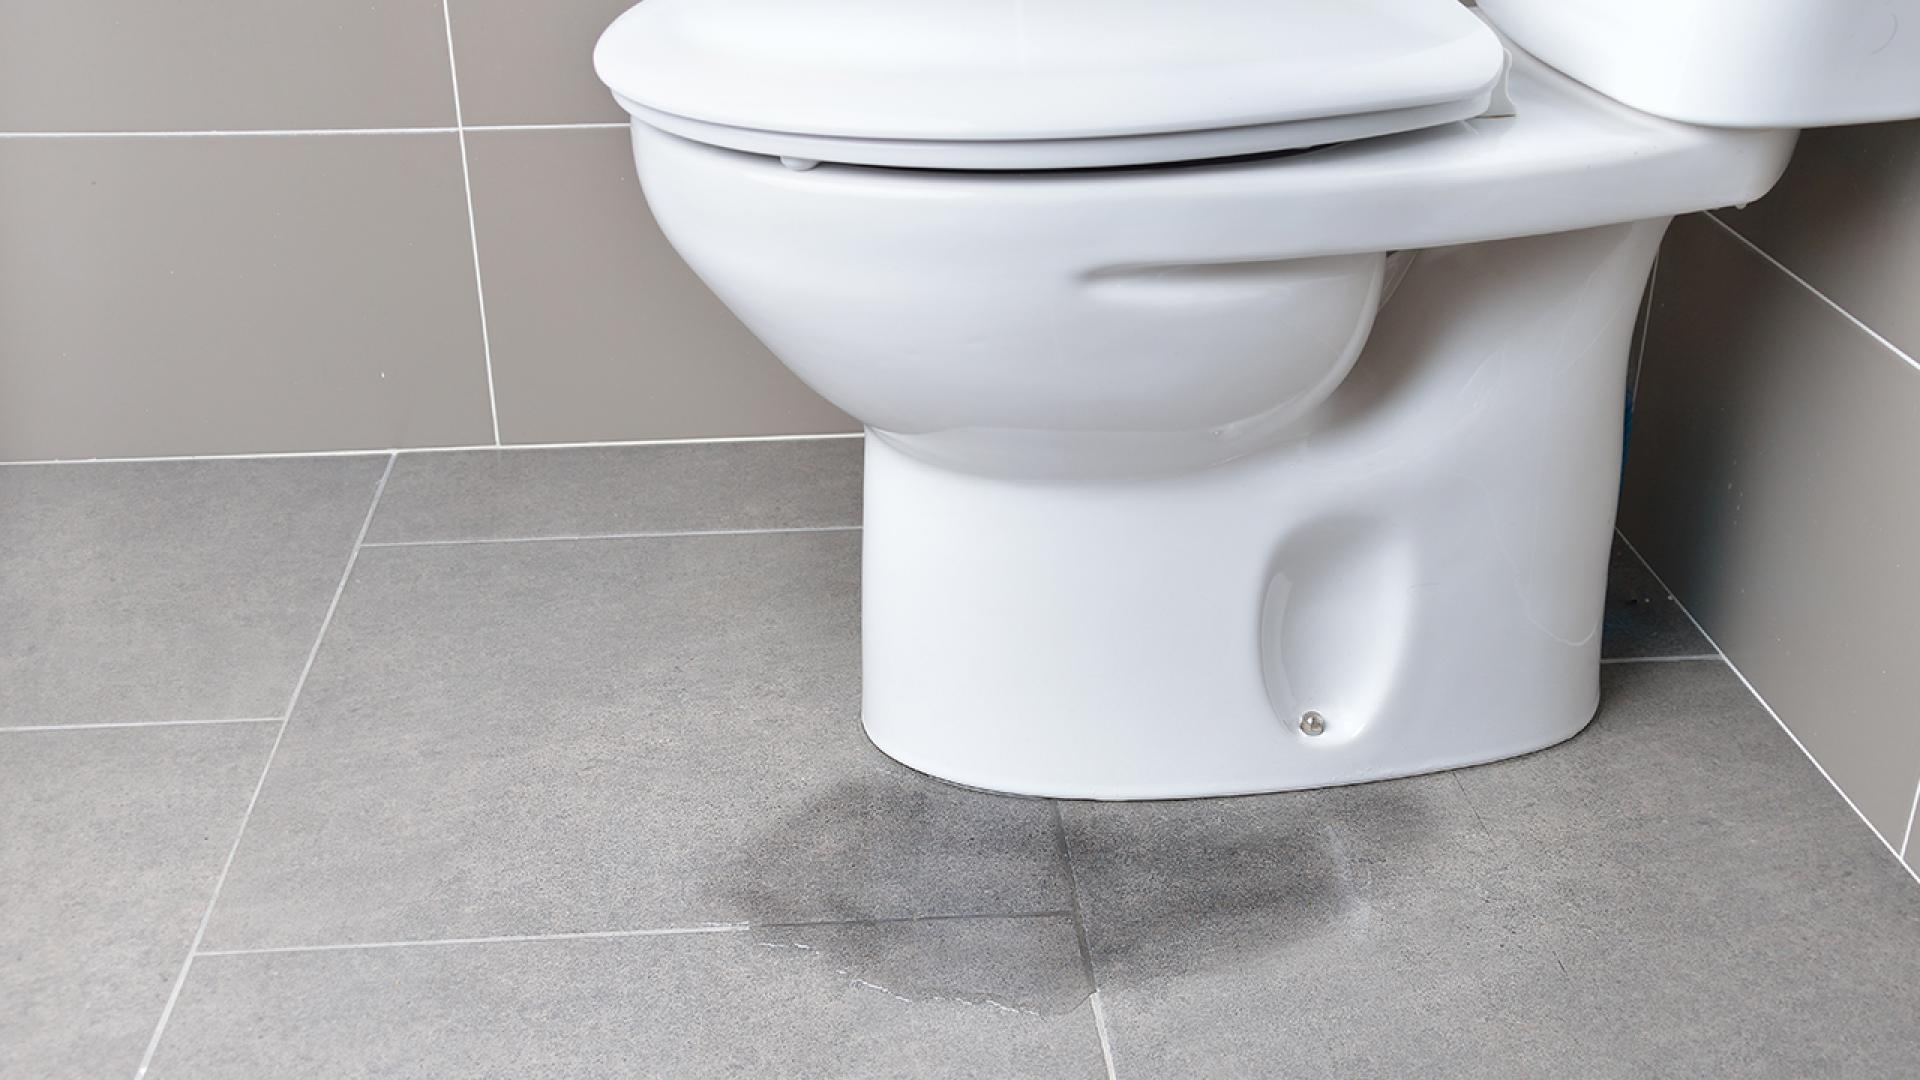 A stock image of a toilet.